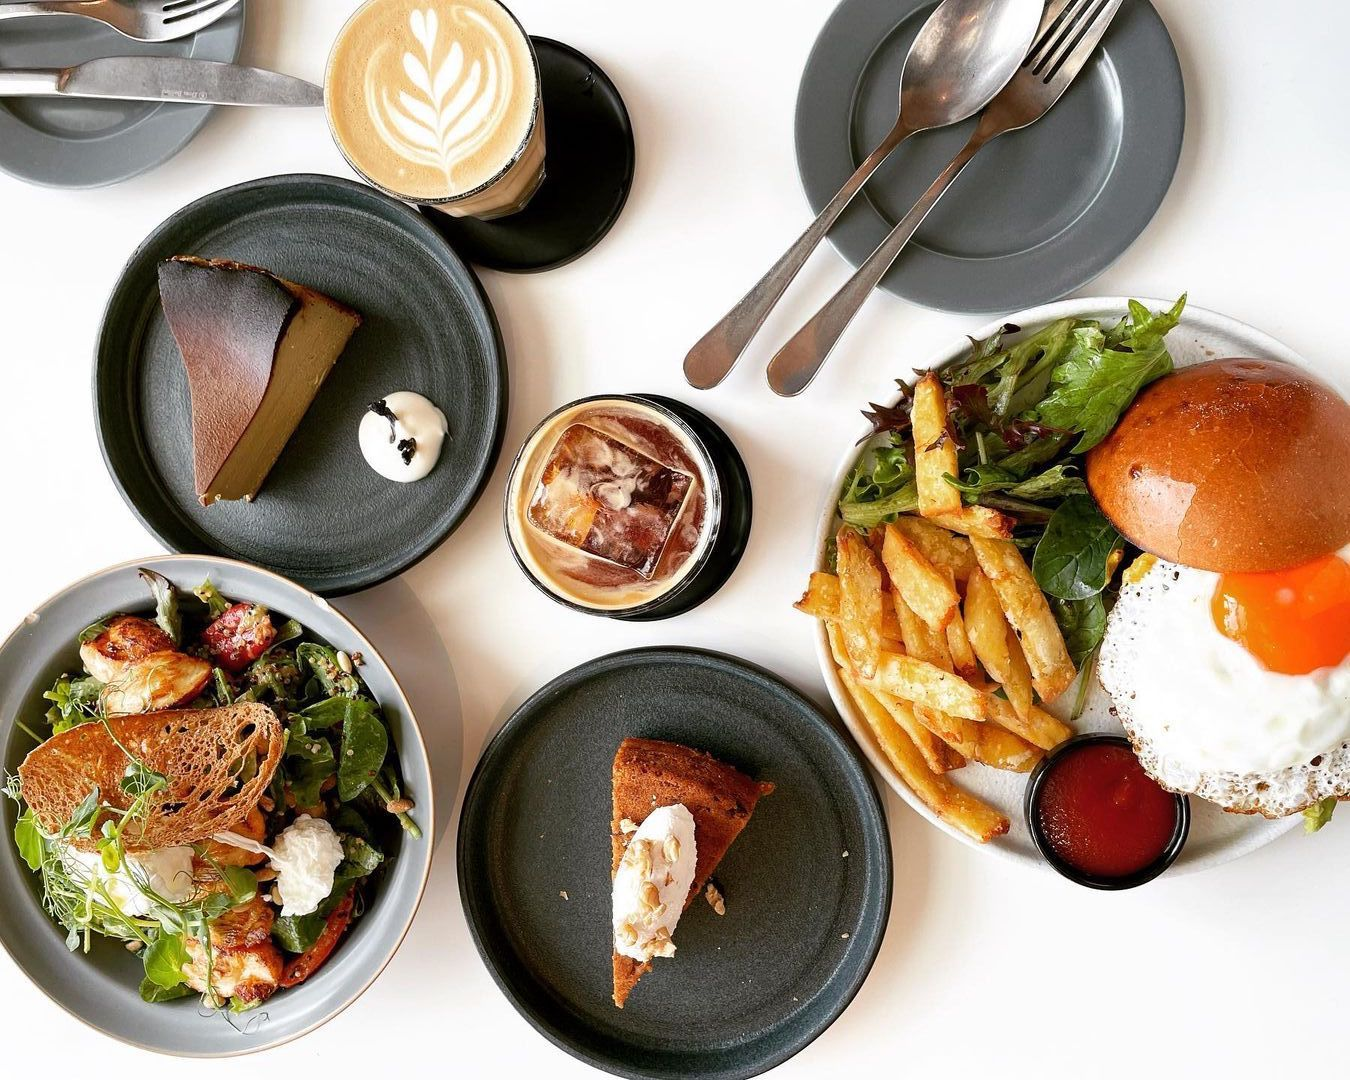 Neighbourhood Guide: Where To Eat, Drink And Shop In Tseung Kwan O